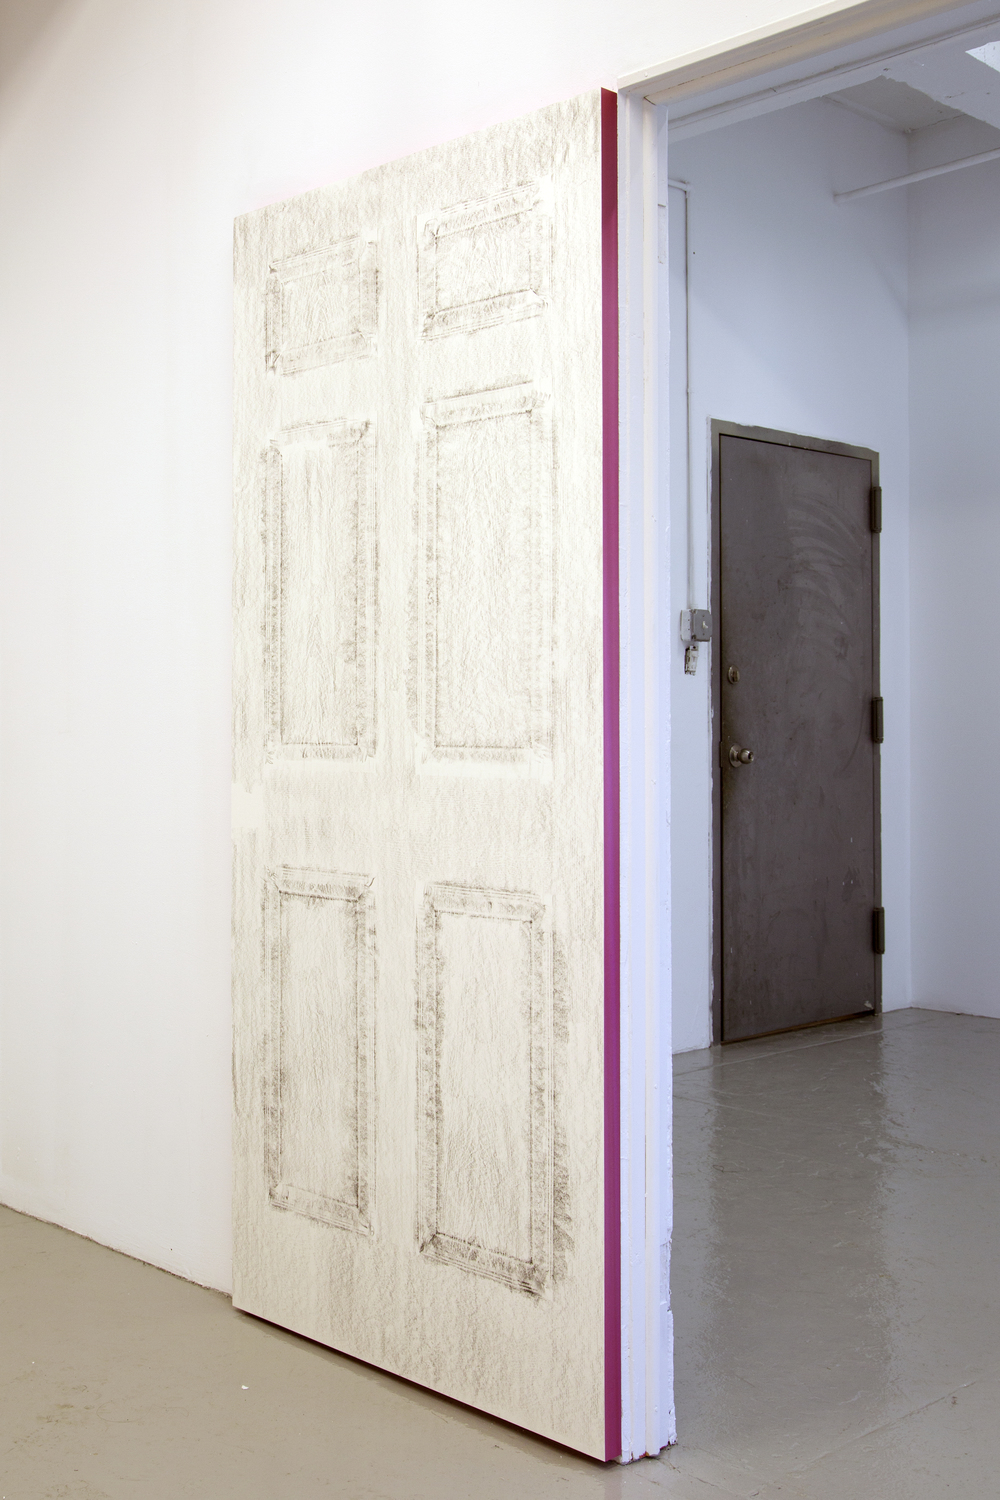 Enzo Shalom A Rubbing of The Door of My House, 2014 Graphite, rice paper, masonite, DecoMetal 36'' x 80''